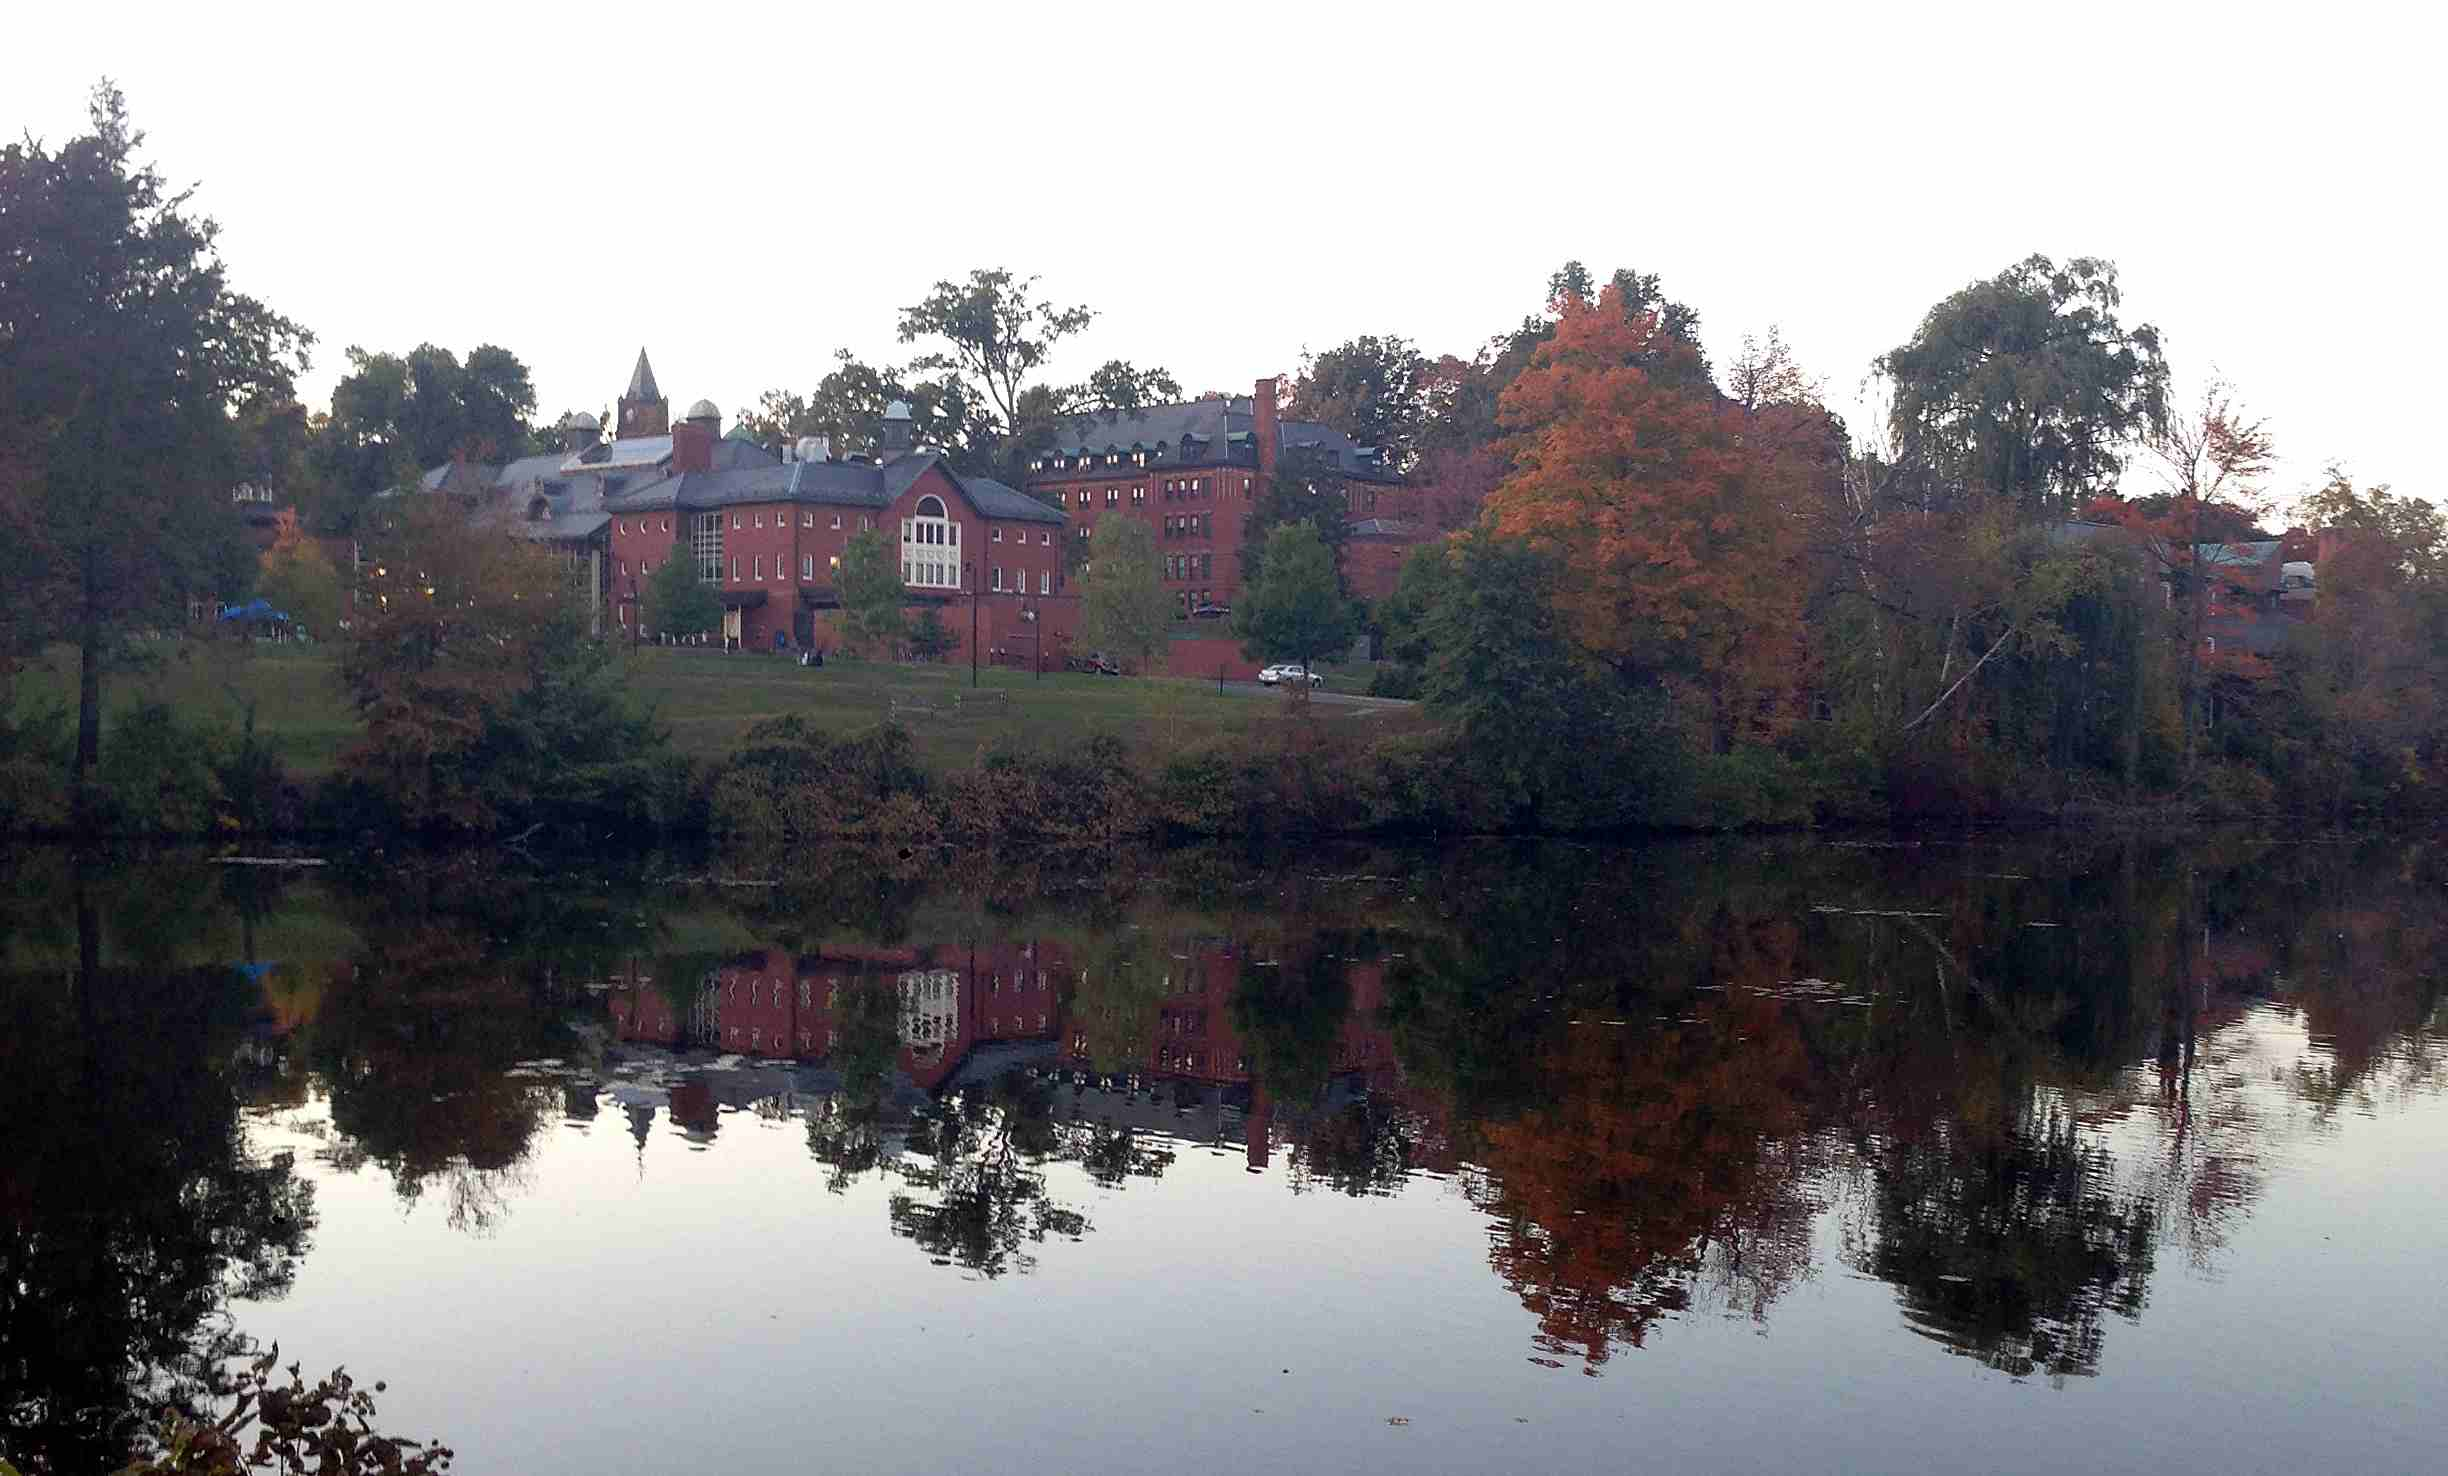 Mount Holyoke College from afar